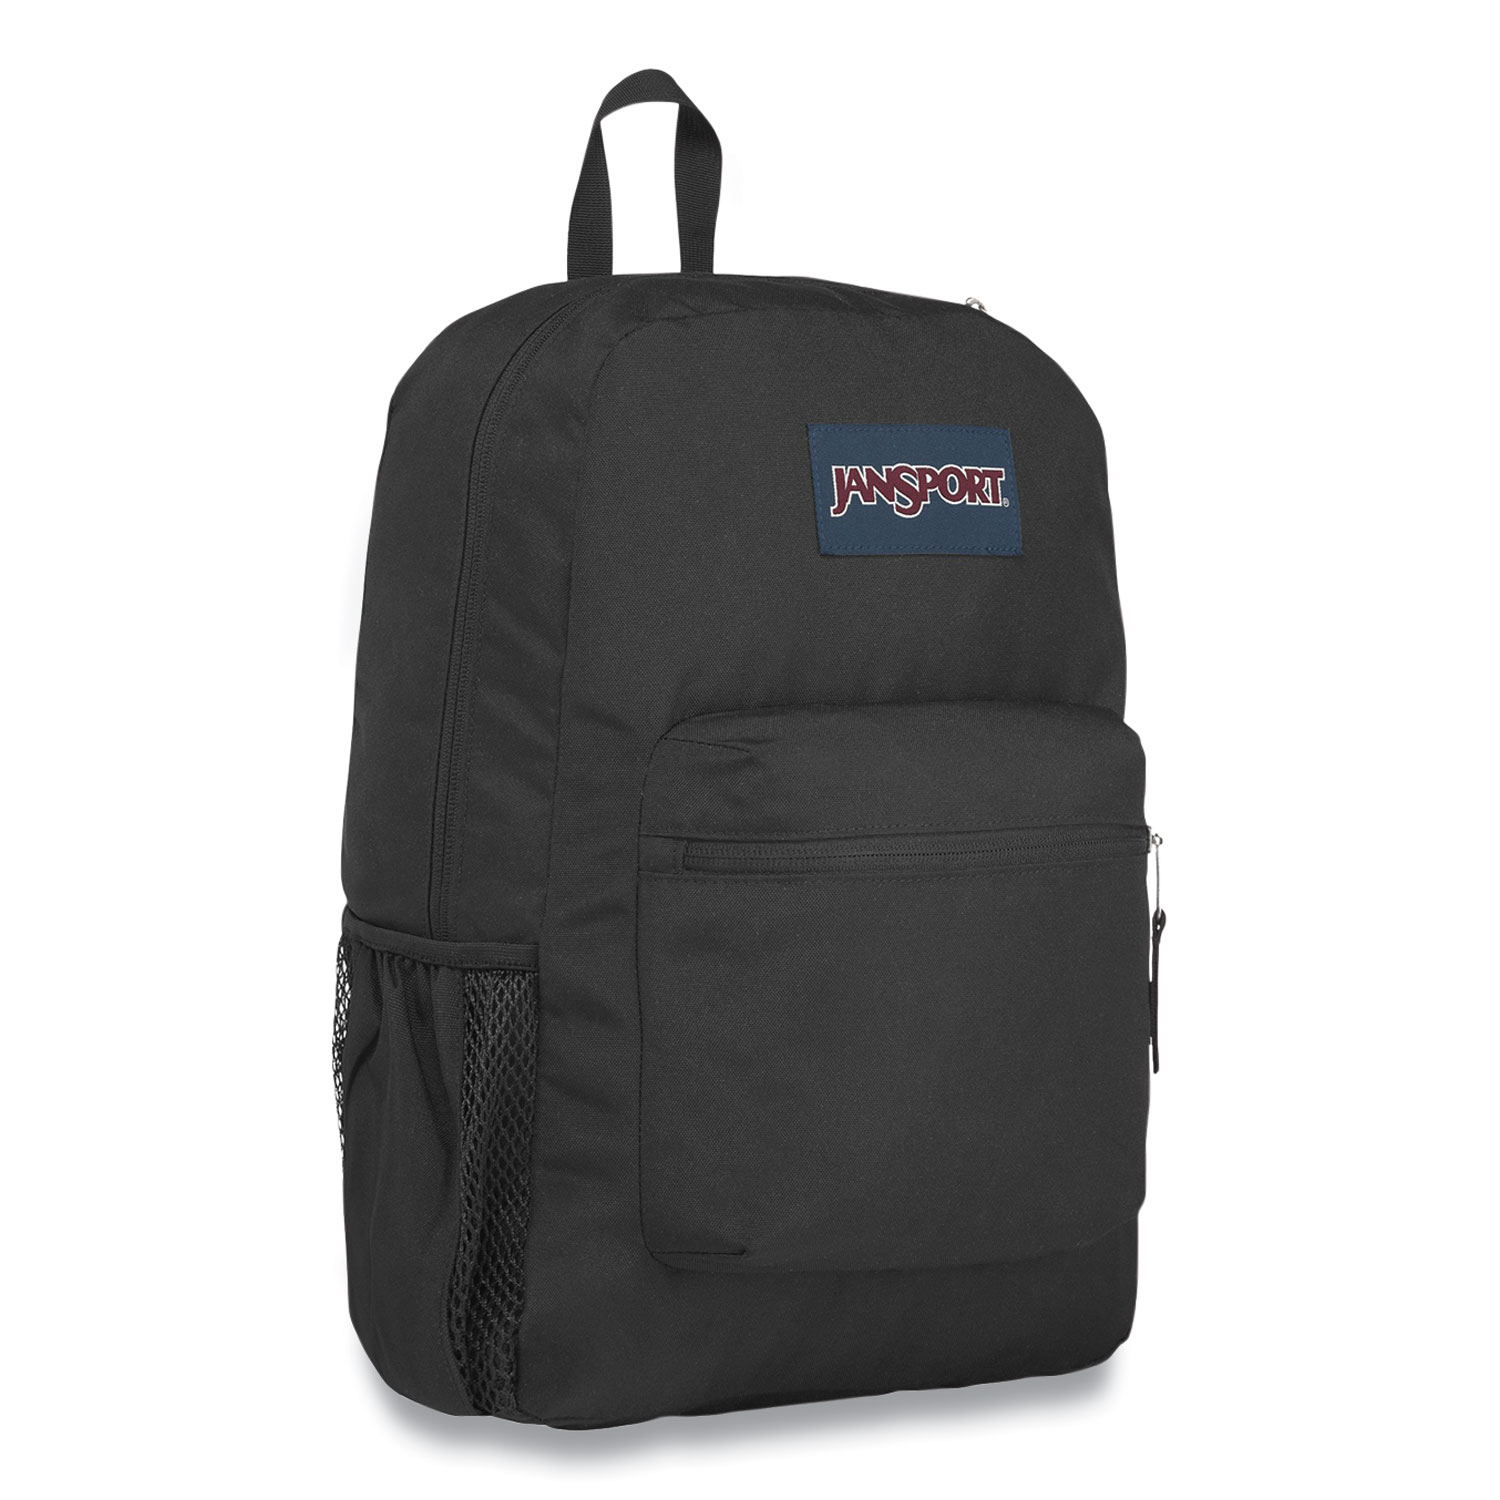 JanSport® Cross Town Backpack, 13 x 8.5 x 16.7, Polyester, Black